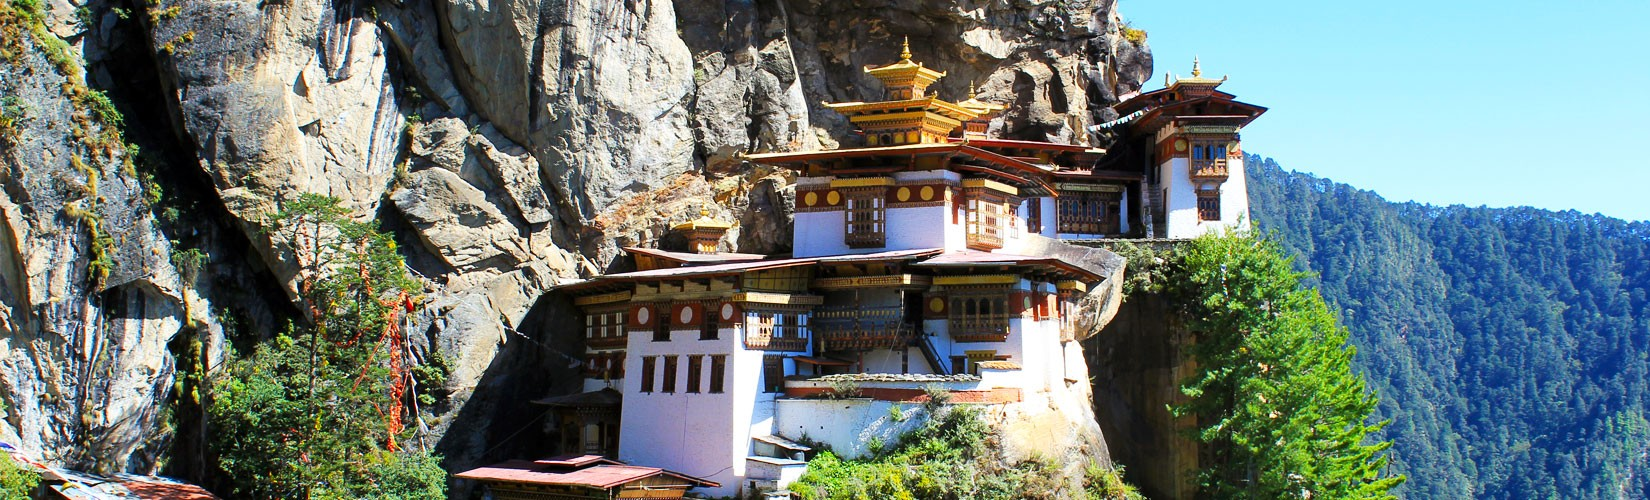 This 03 Nights 04 Days Bhutan Tour will take you to Paro and Thimpu, capital city of Bhutan. The Himalayan flight to Paro and visit to Taktsang Monastery (Tiger's Nest) is going to be awe-inspiring experience for you.